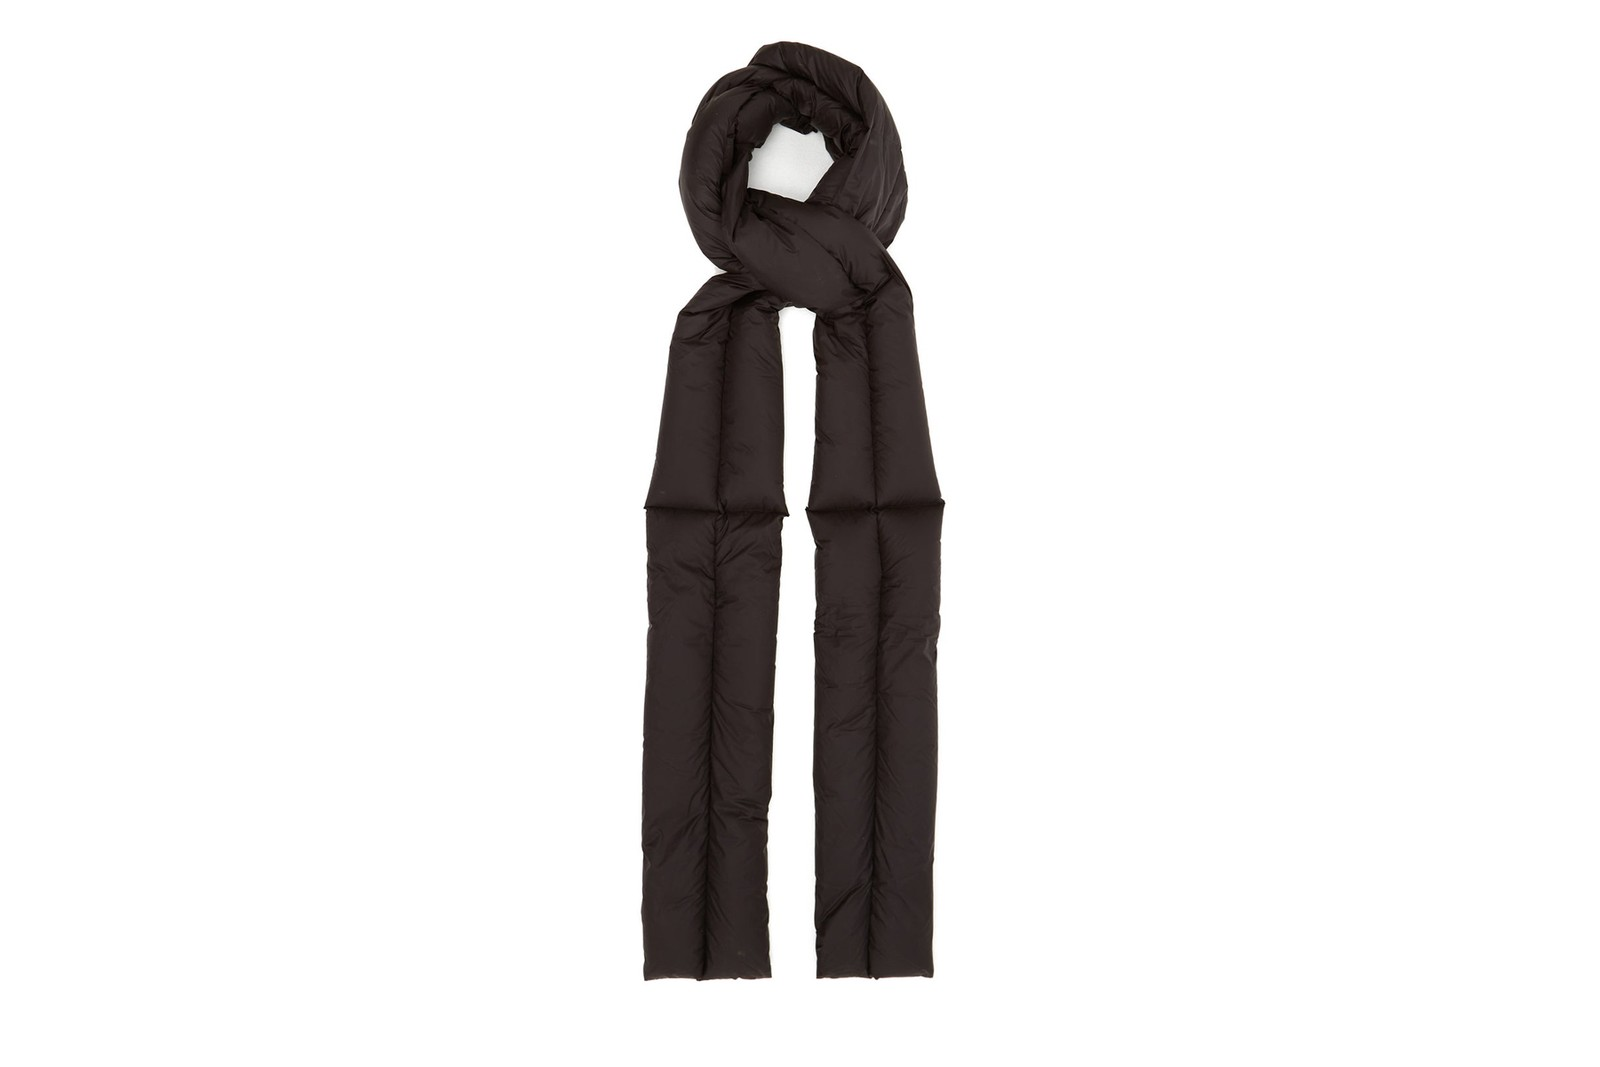 best mens luxury scarves fall winter 2019 burberry scarf where to buy off white accessories heron preston rick owens raf simons